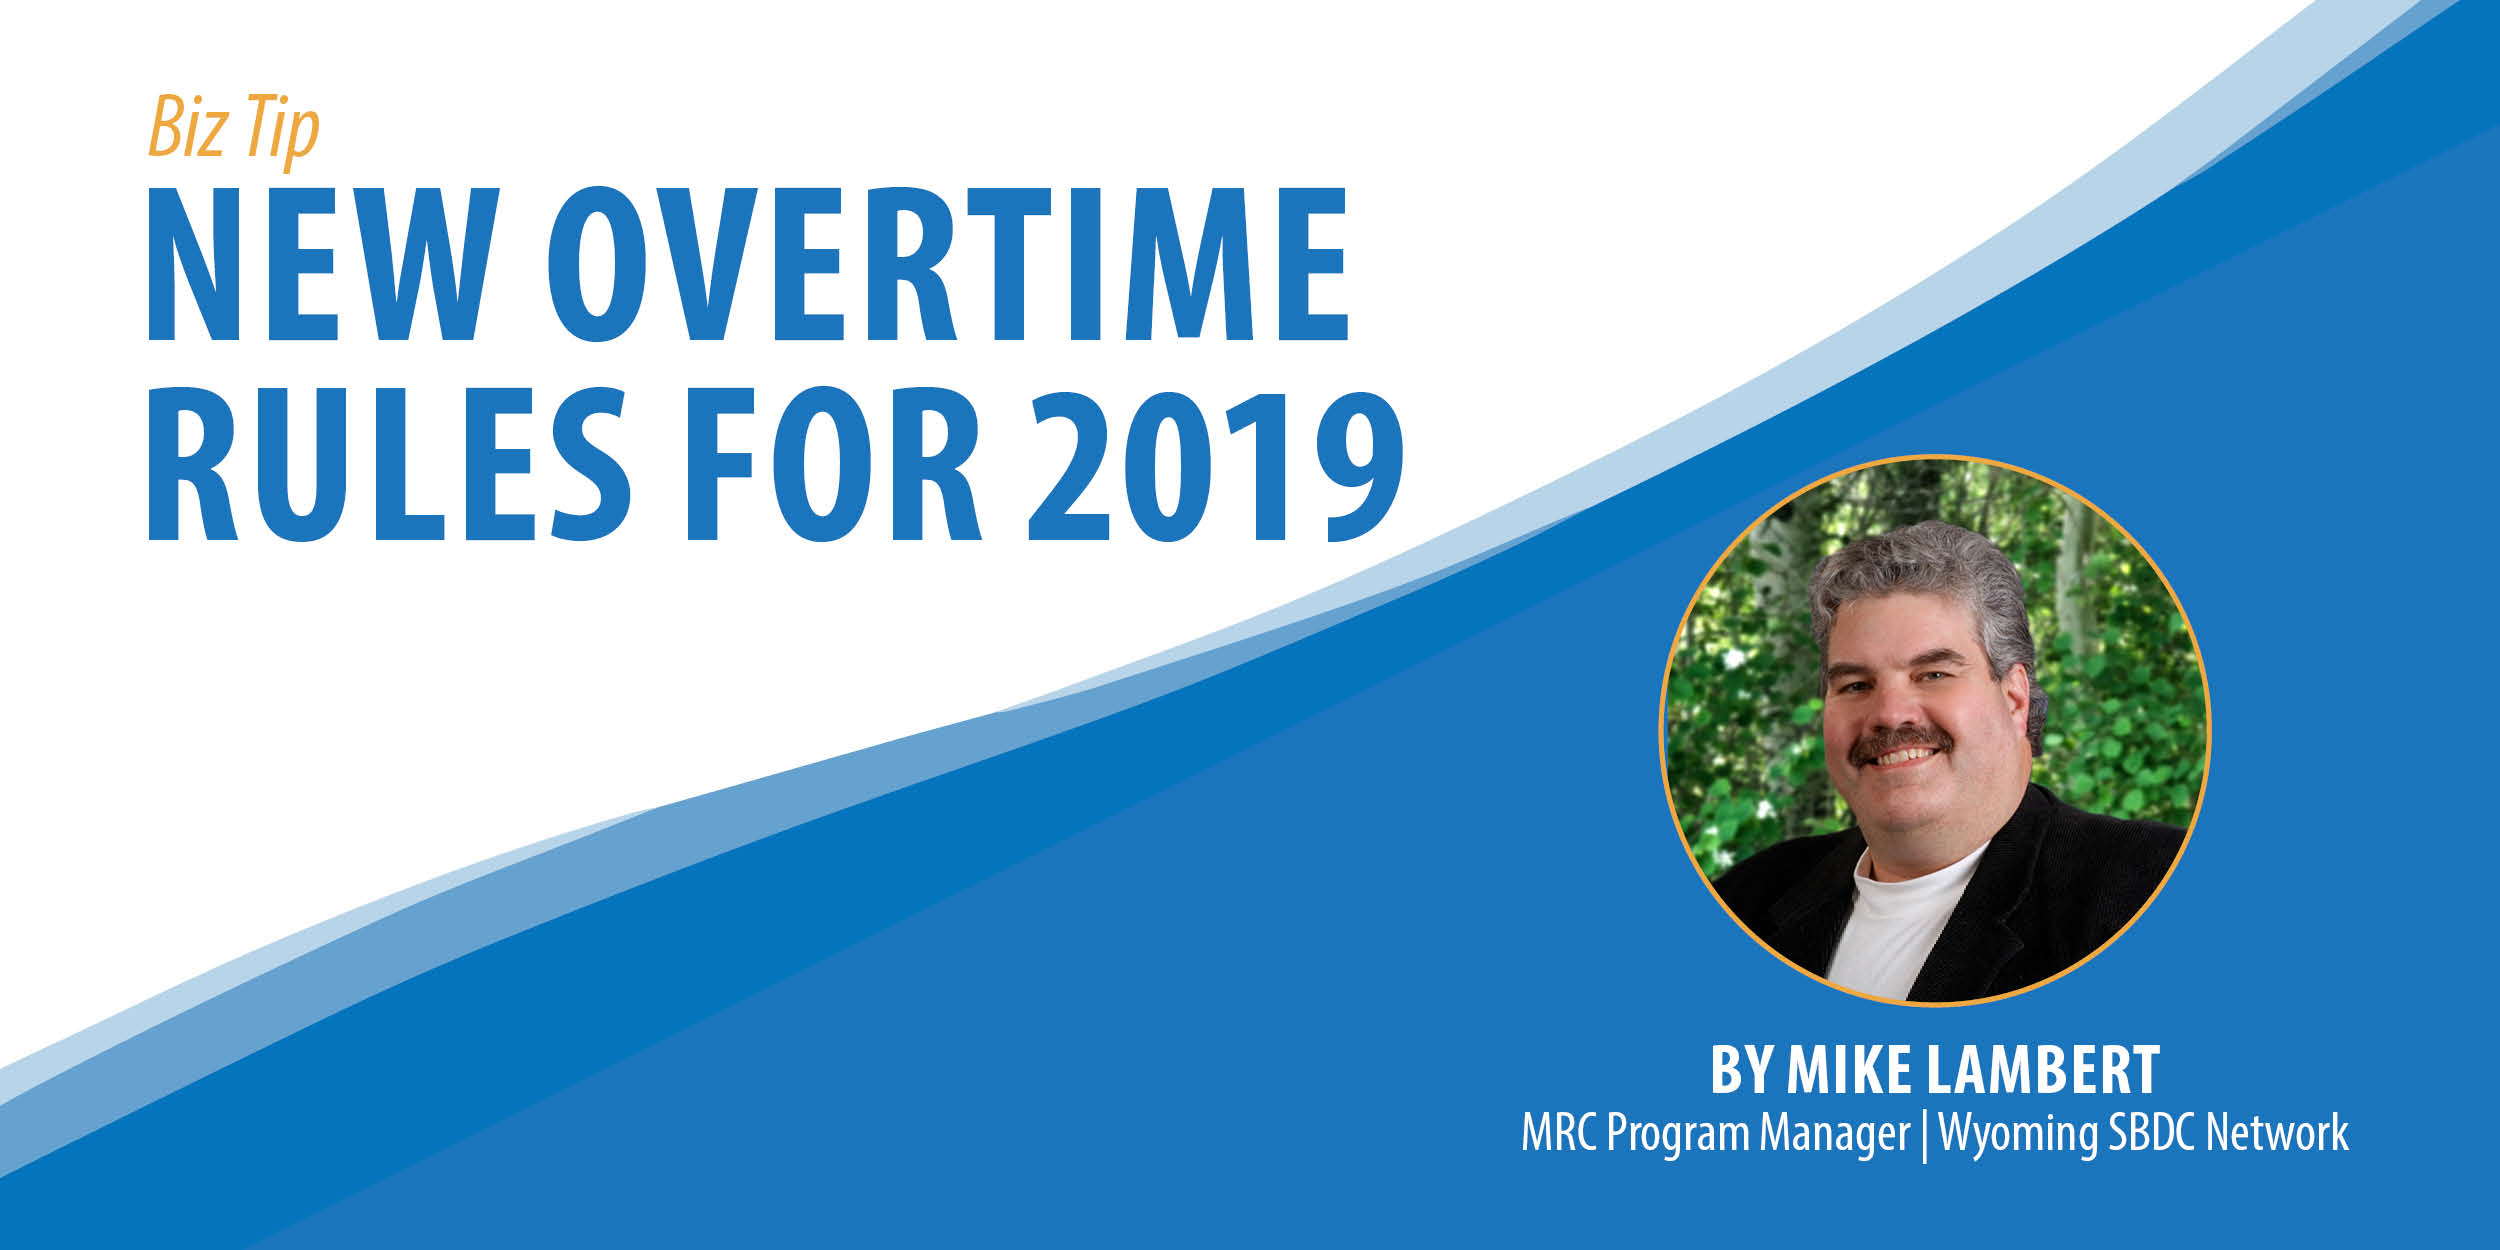 New Overtime Rules for 2019 Biz Tip